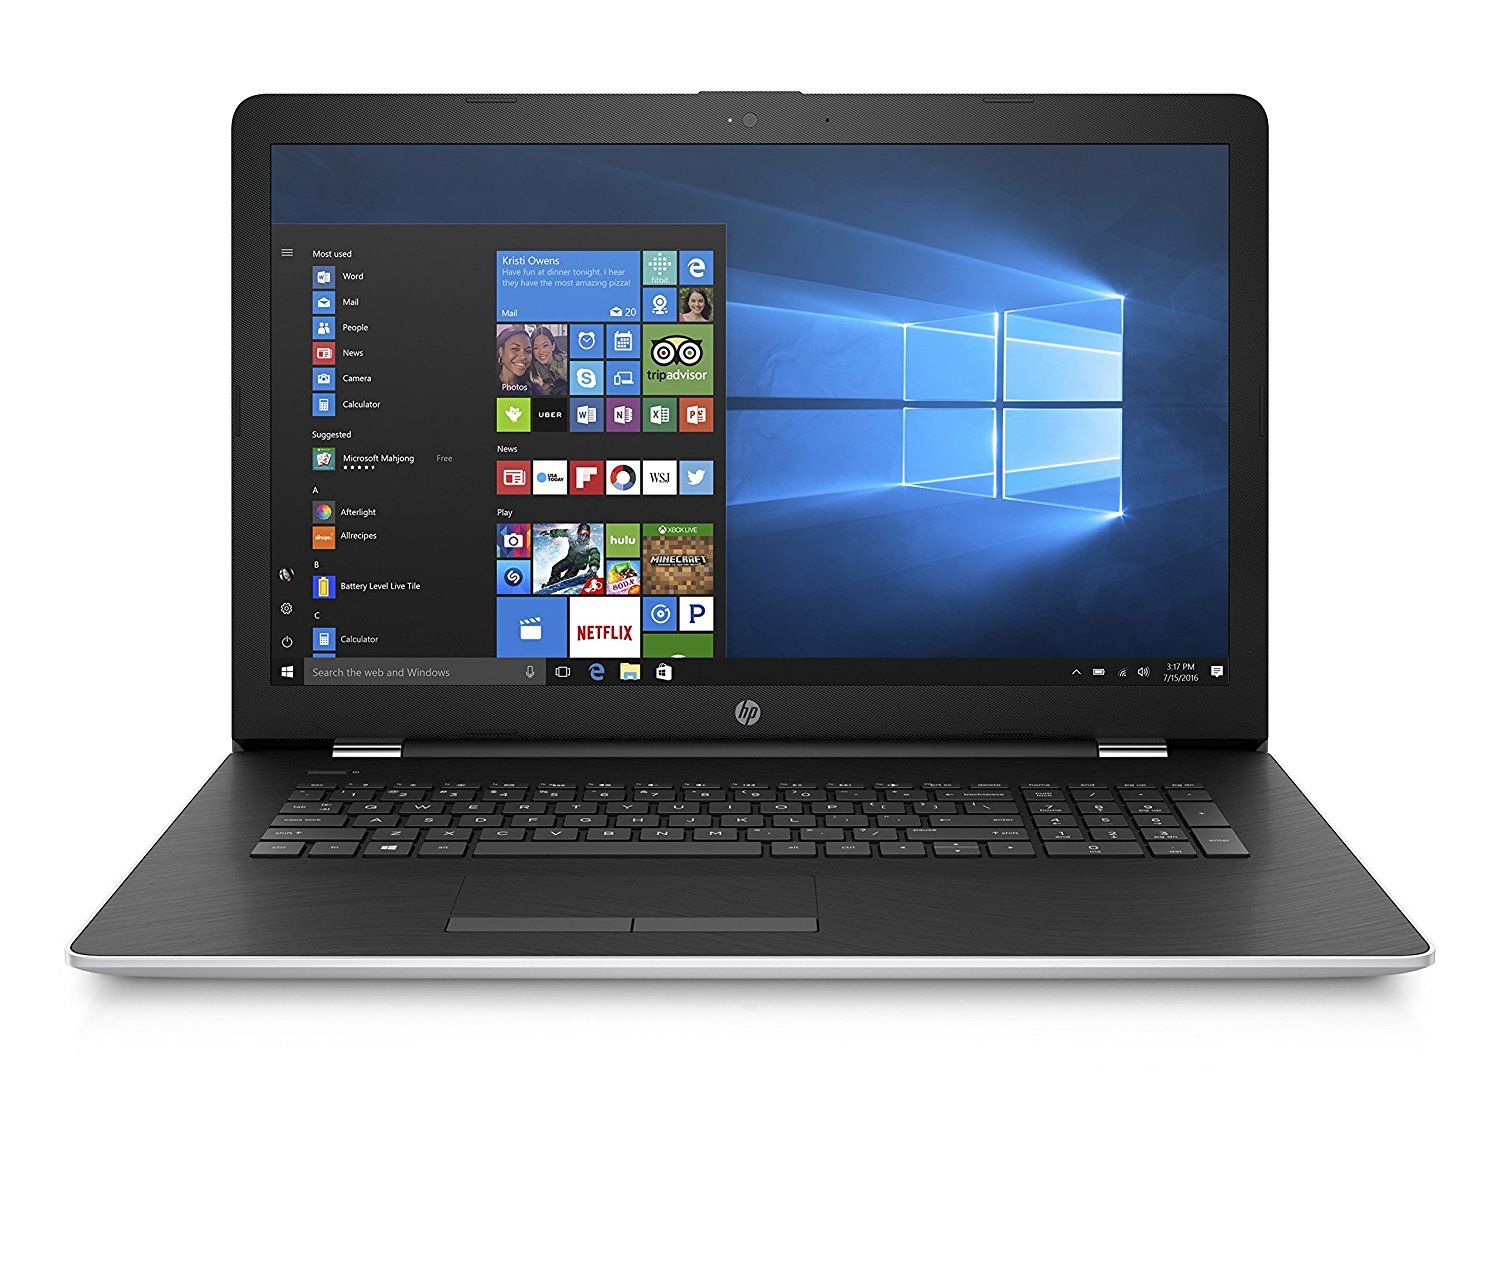 2018 10 Top Rated Best Hp Laptops In Canada Images Review Link To Buy Hp Laptop Hd Notebook Laptop